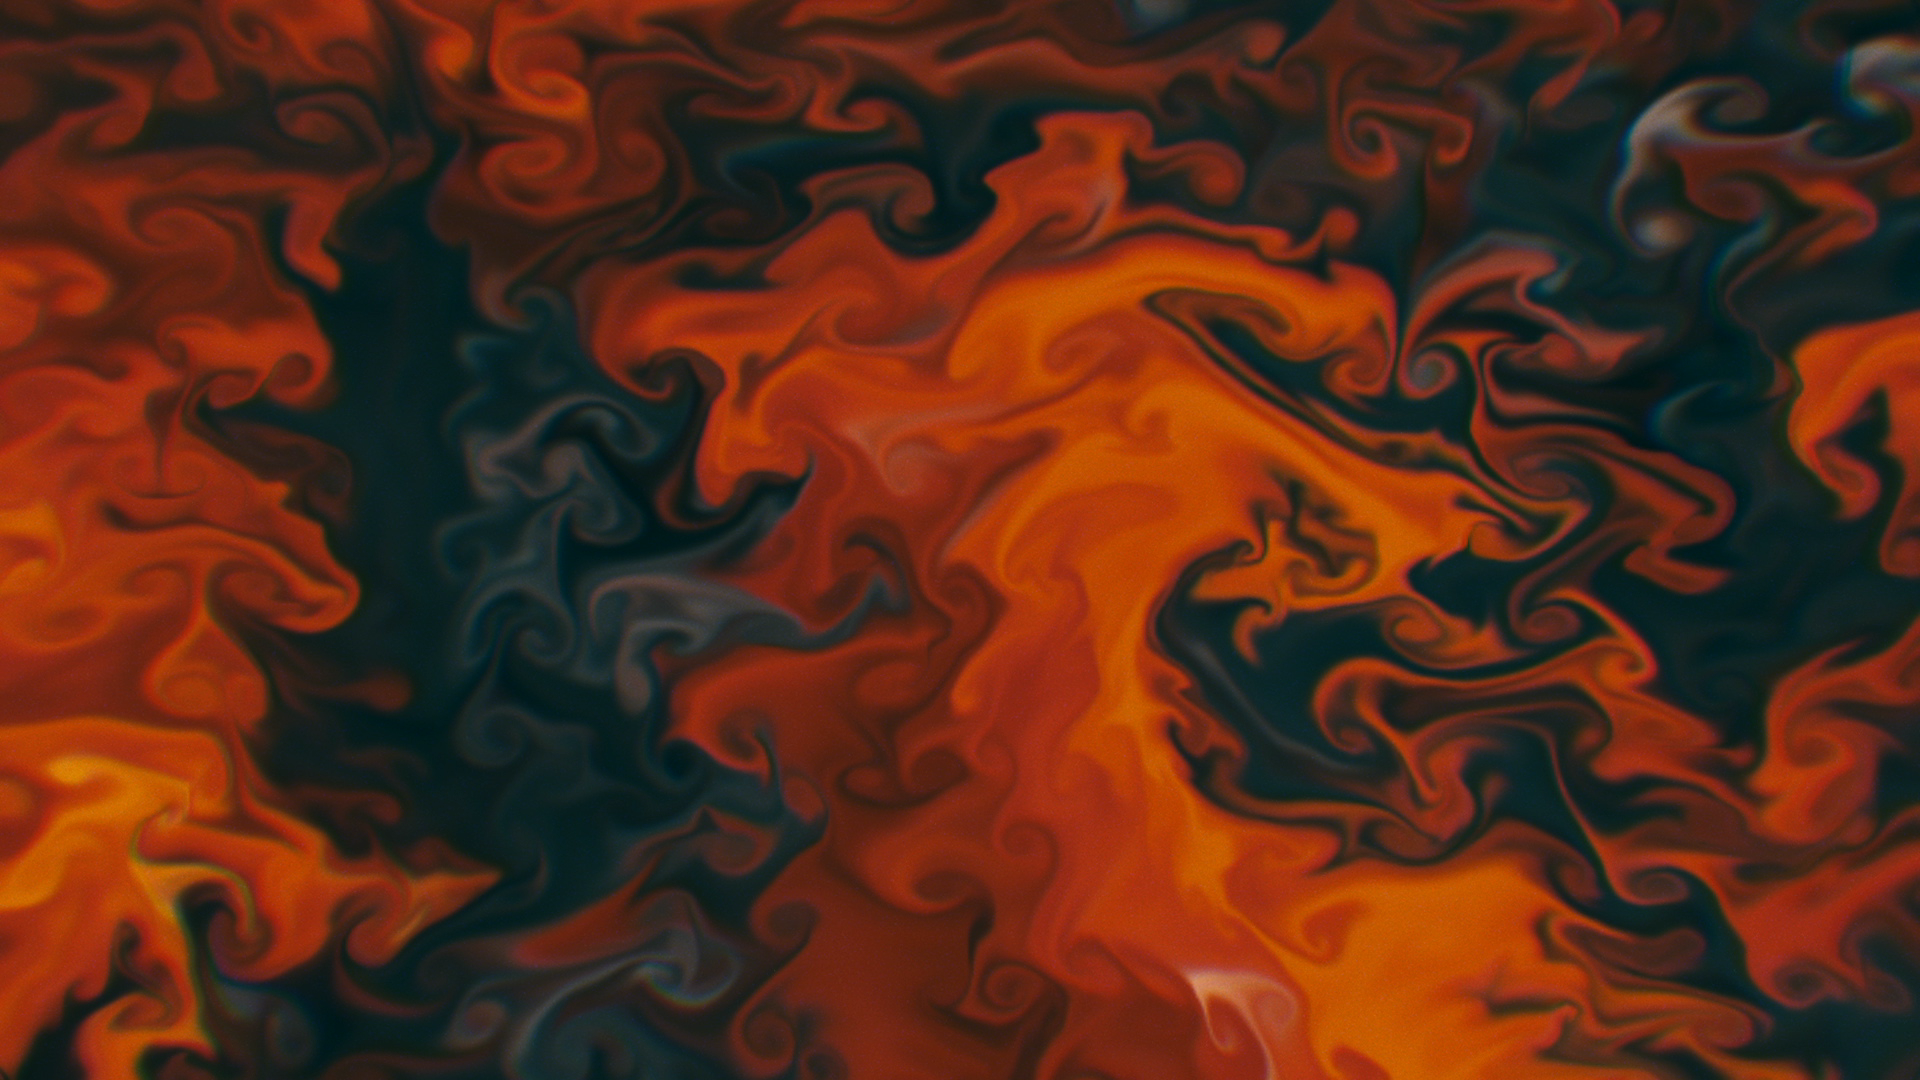 Image 1 - Turbulence Demo